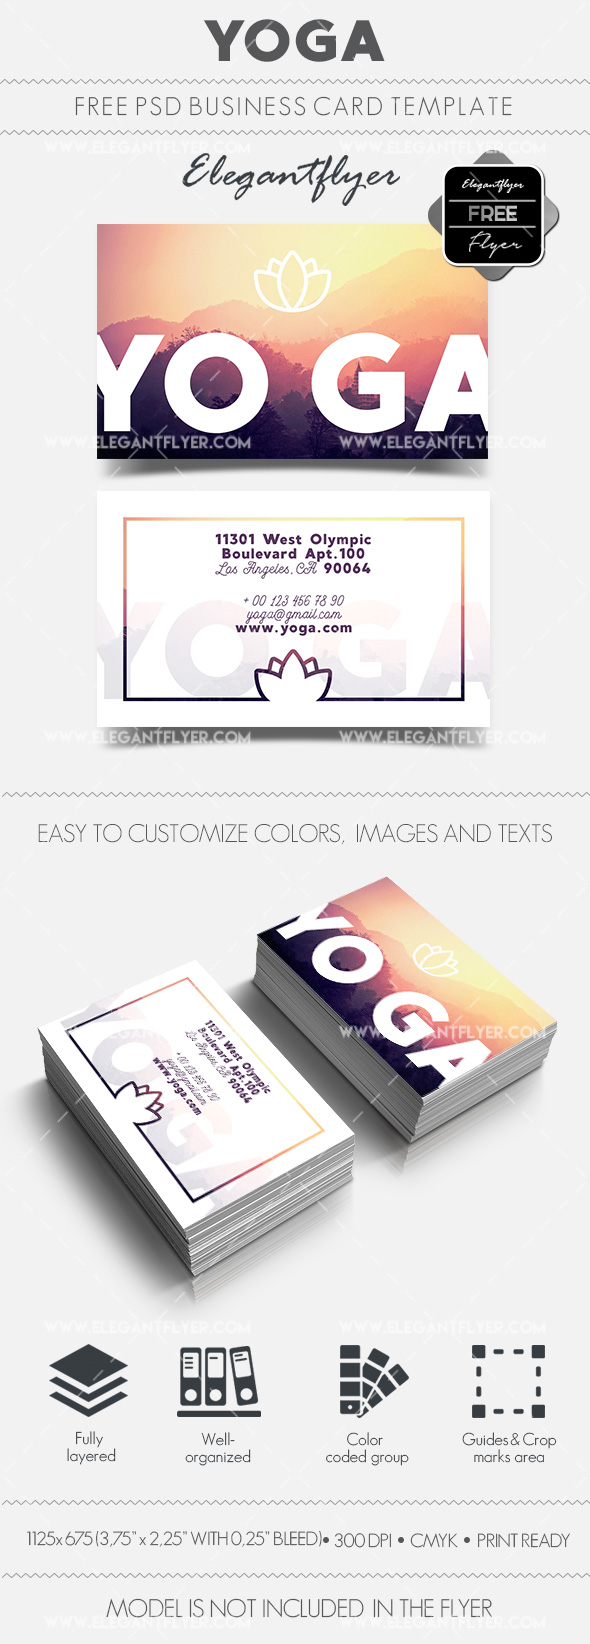 Yoga – Free Business Card Templates PSD